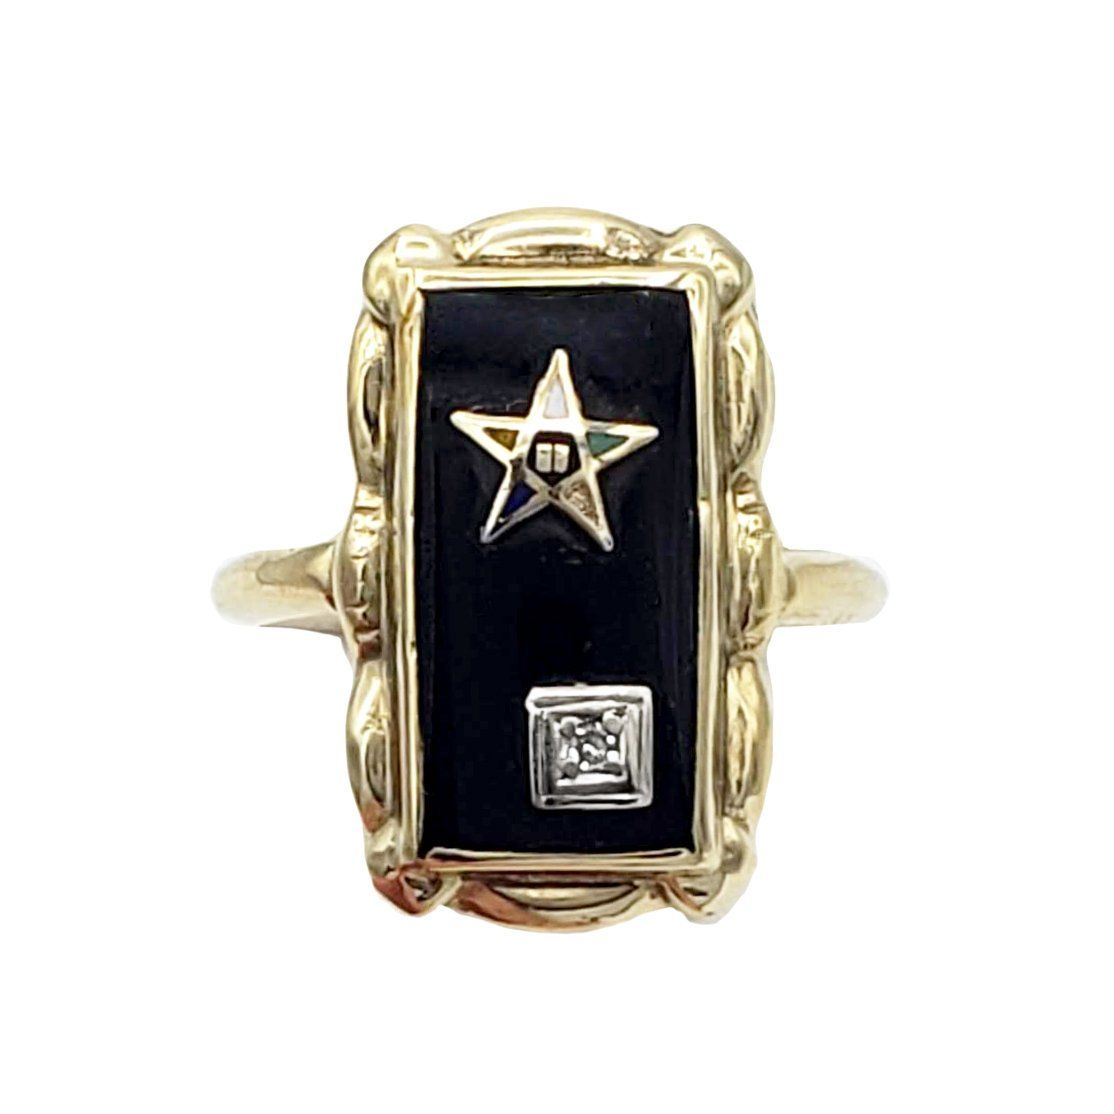 Vintage Eastern Star Ring In 10k Gold With Black Onyx And Etsy Ladies Silver Rings Star Ring Black Onyx Jewelry